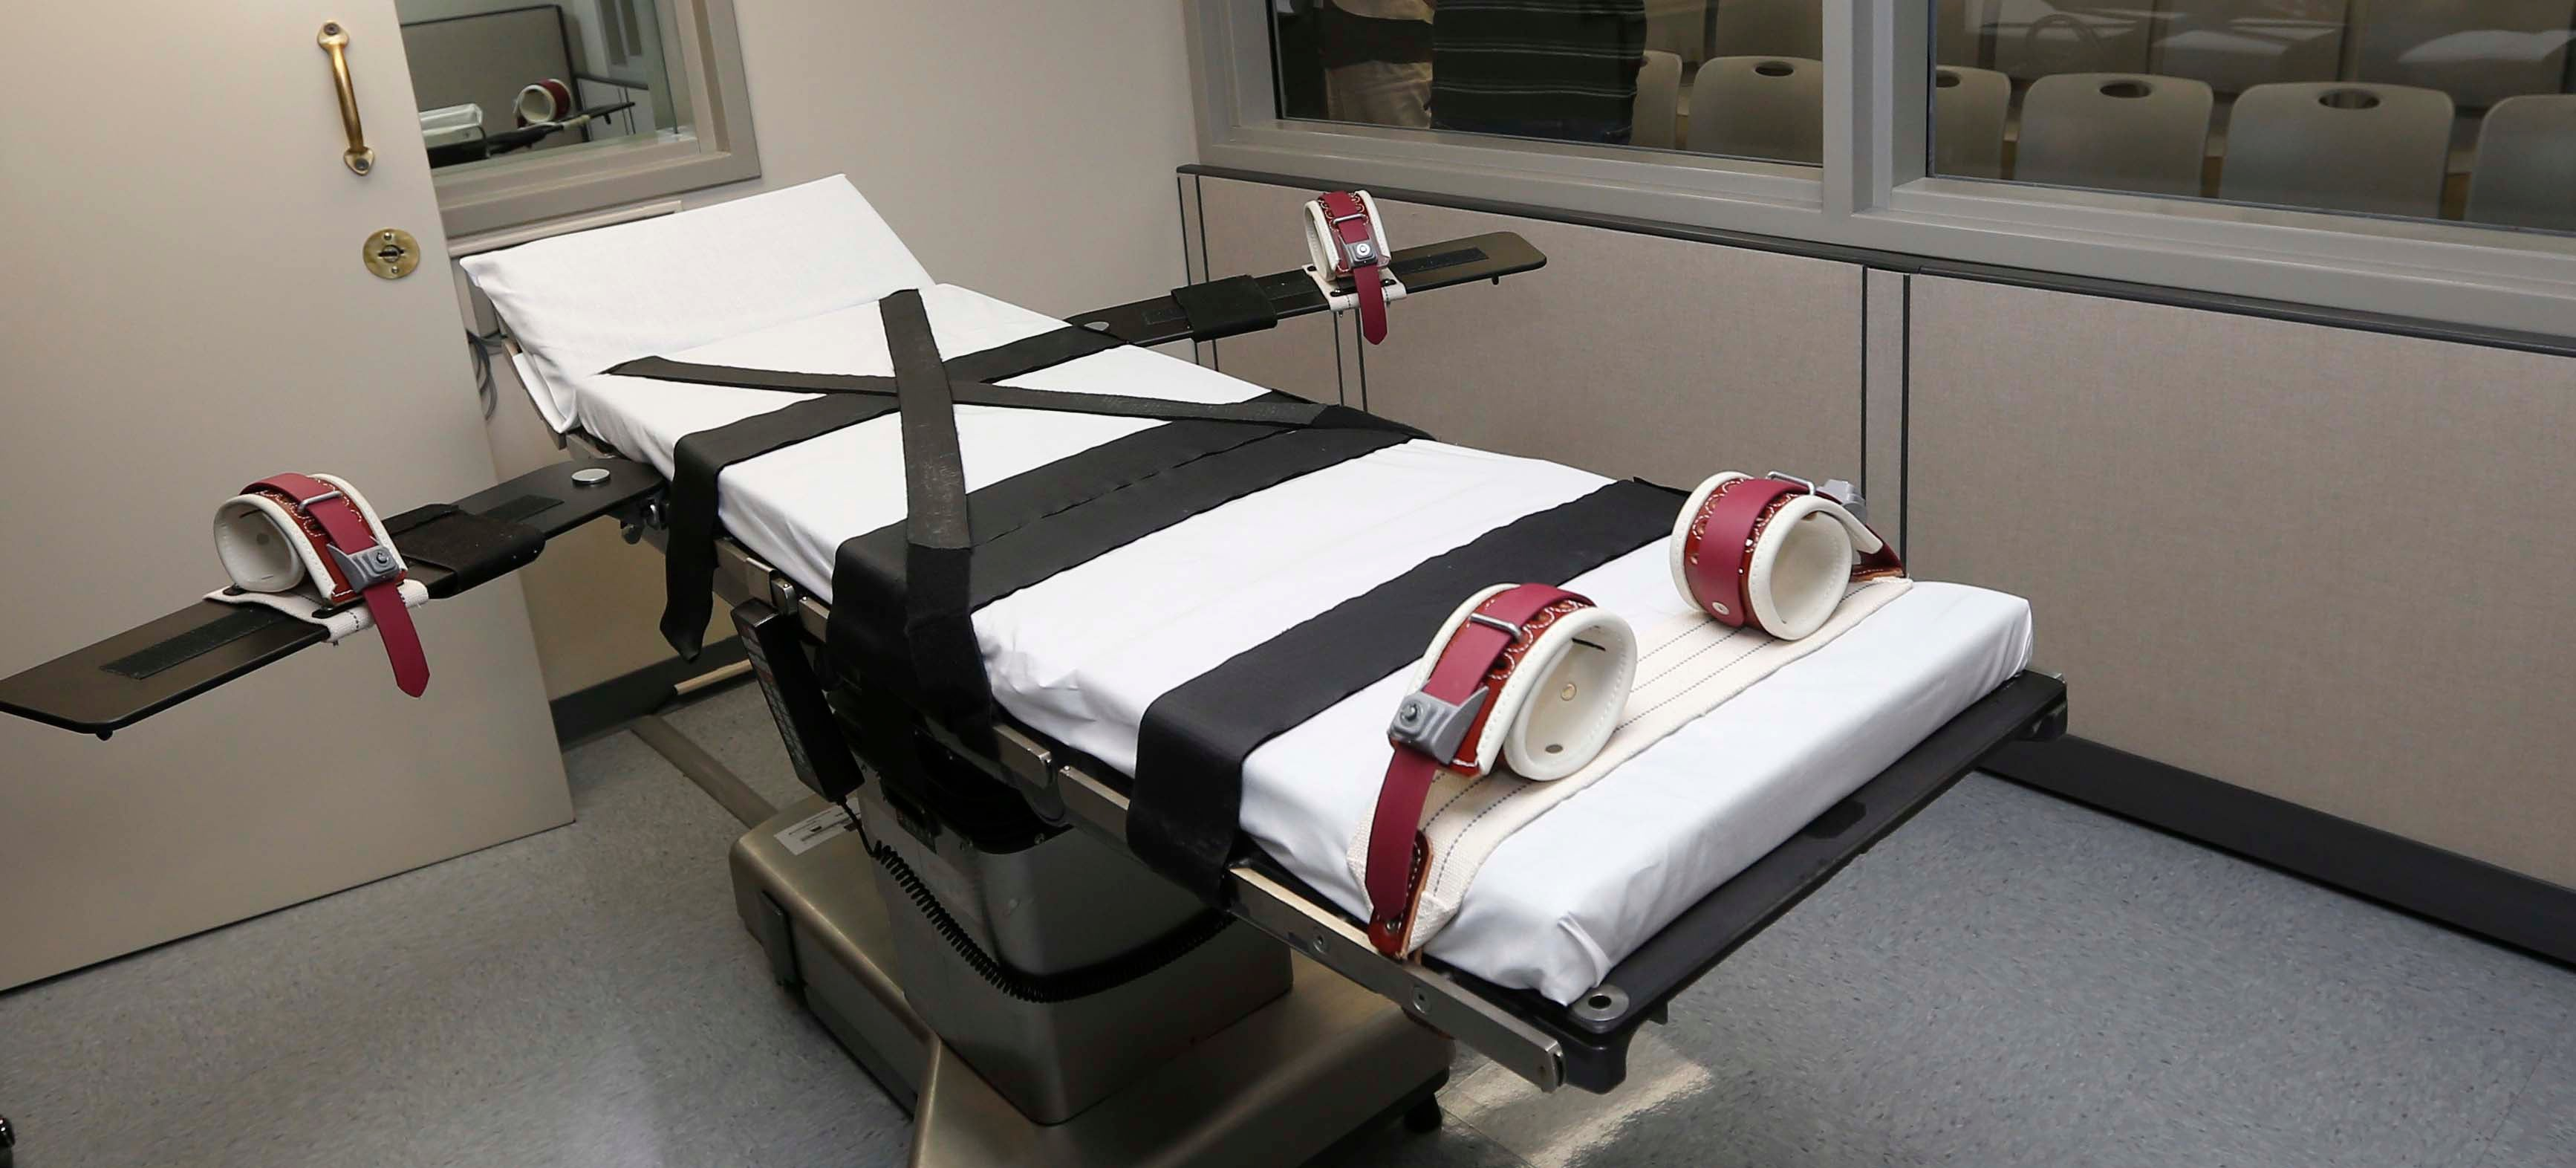 Expert in Supreme Court Lethal Injection Case Did Research on Drugs.com